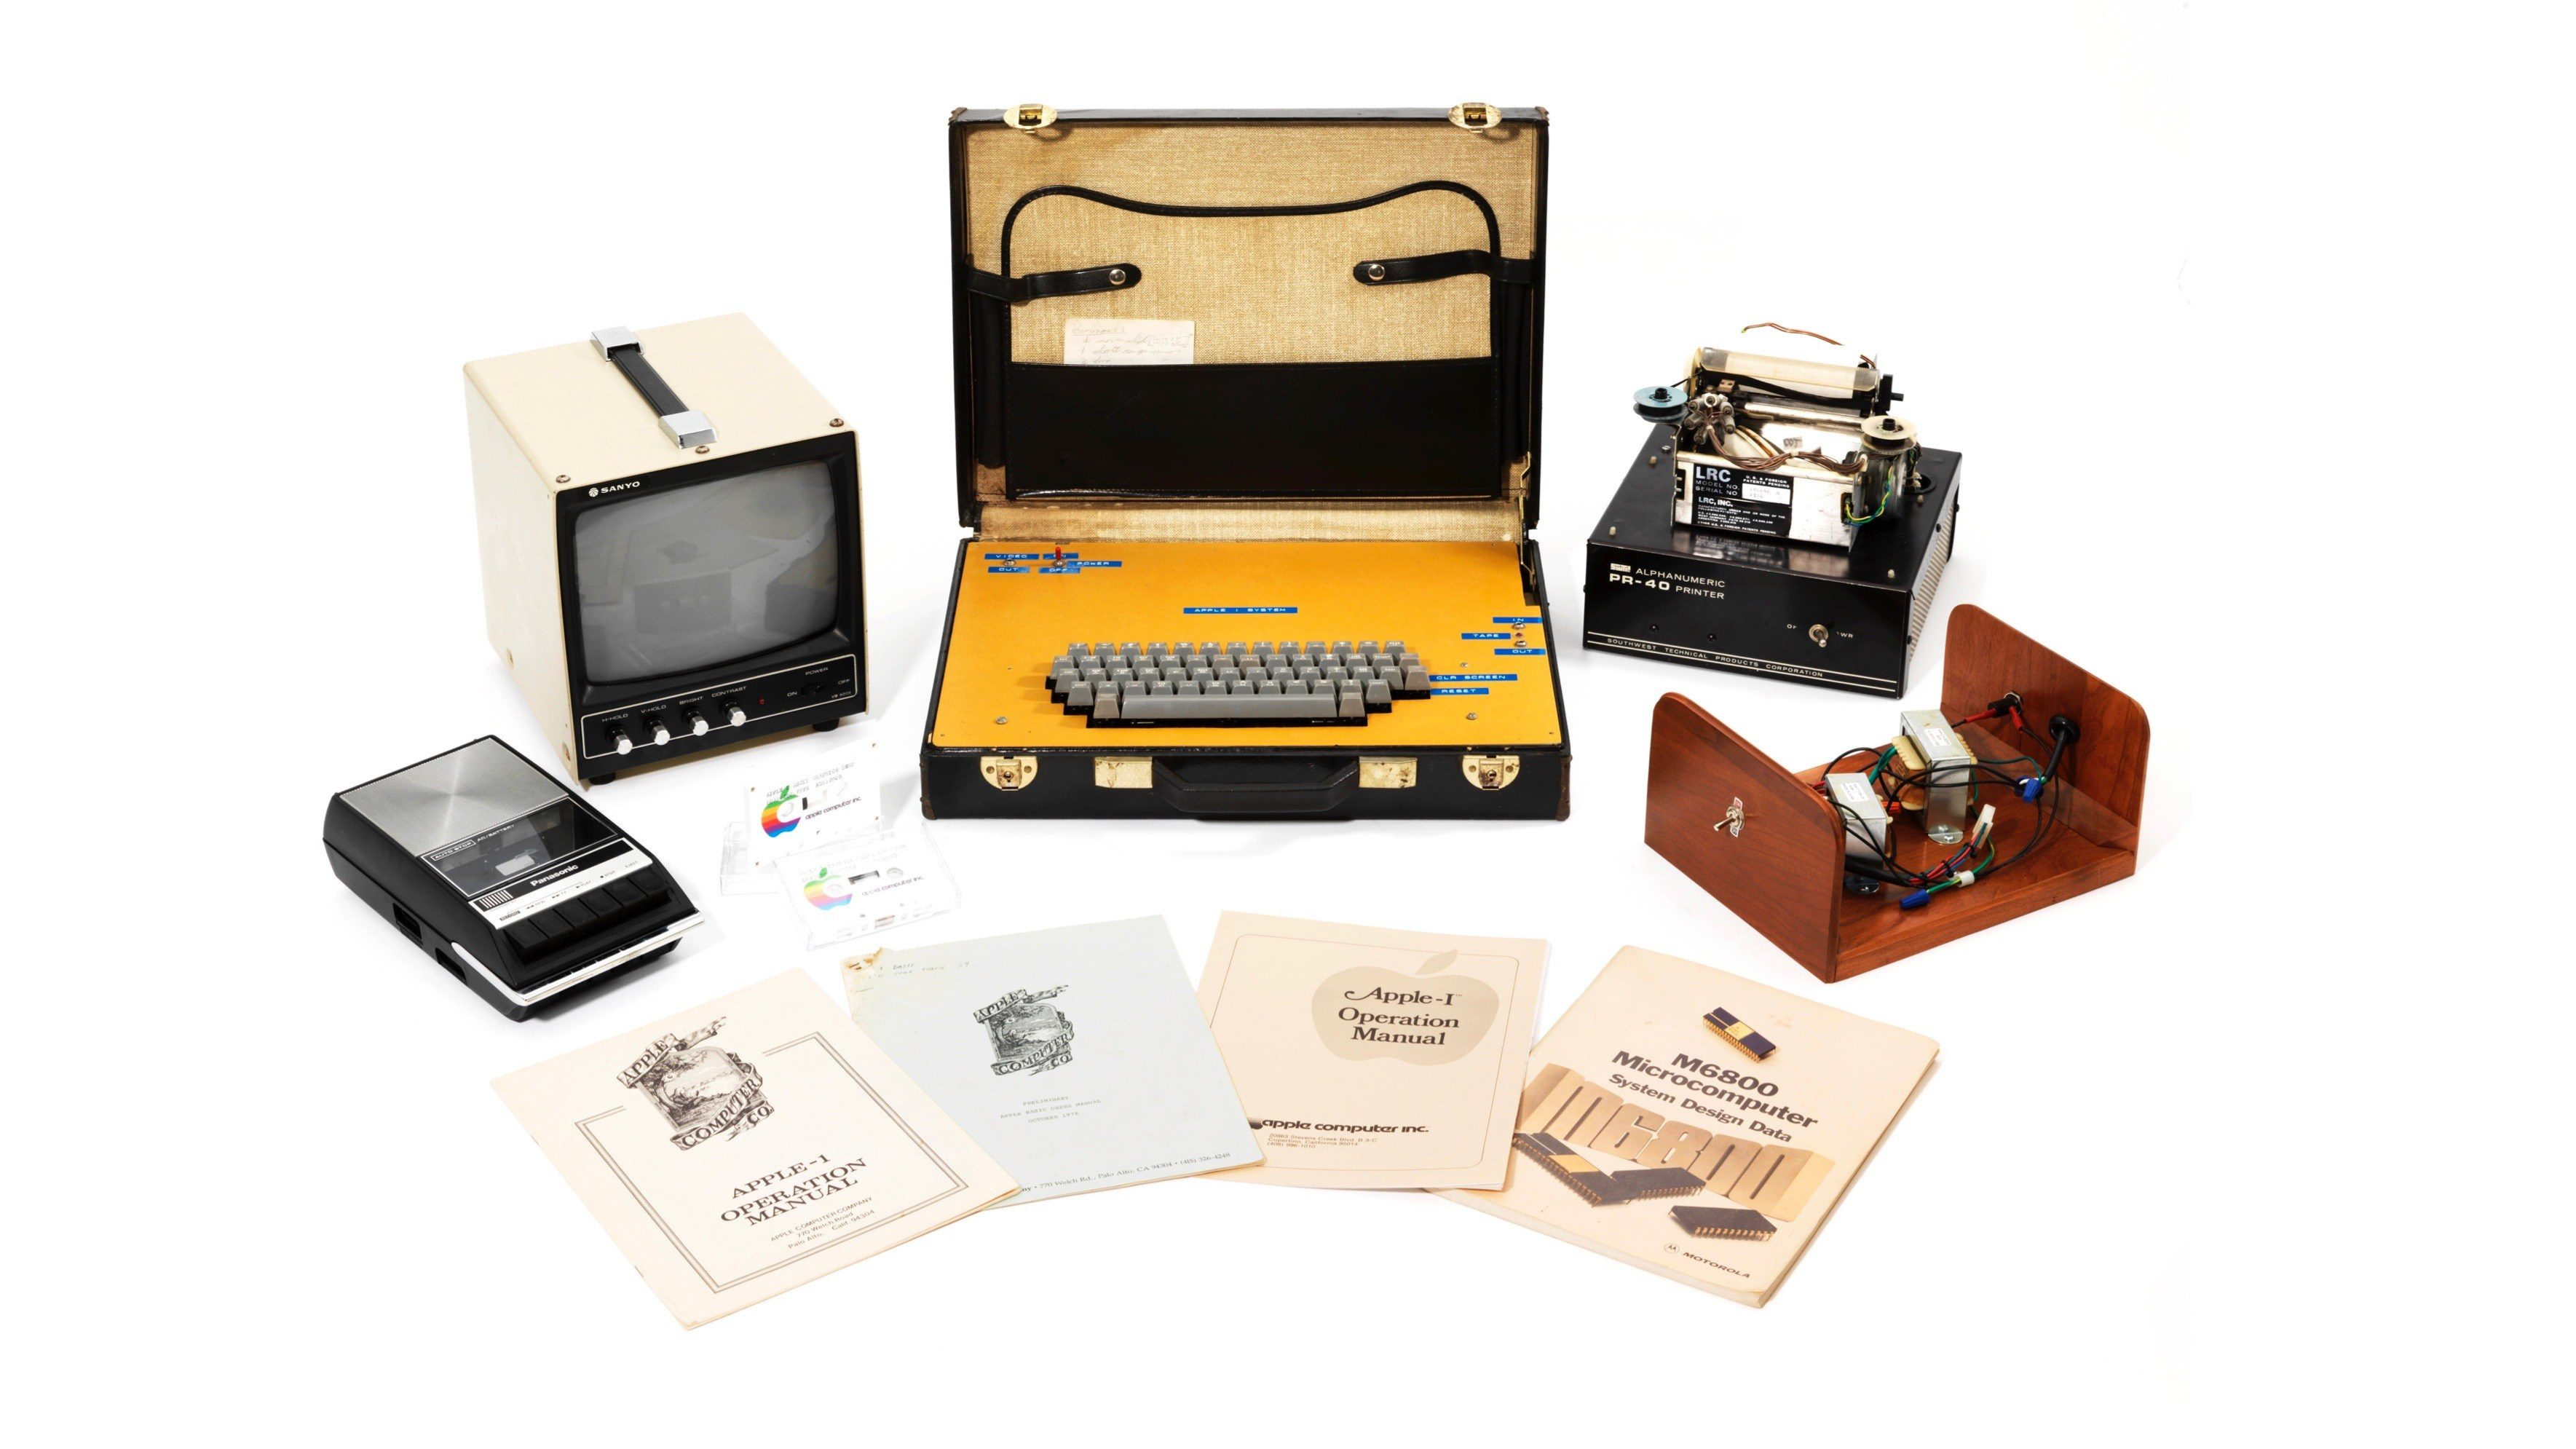 9to5mac.com - Chance Miller - Functioning Apple-1 with unique accessory lot sells for $471K at auction